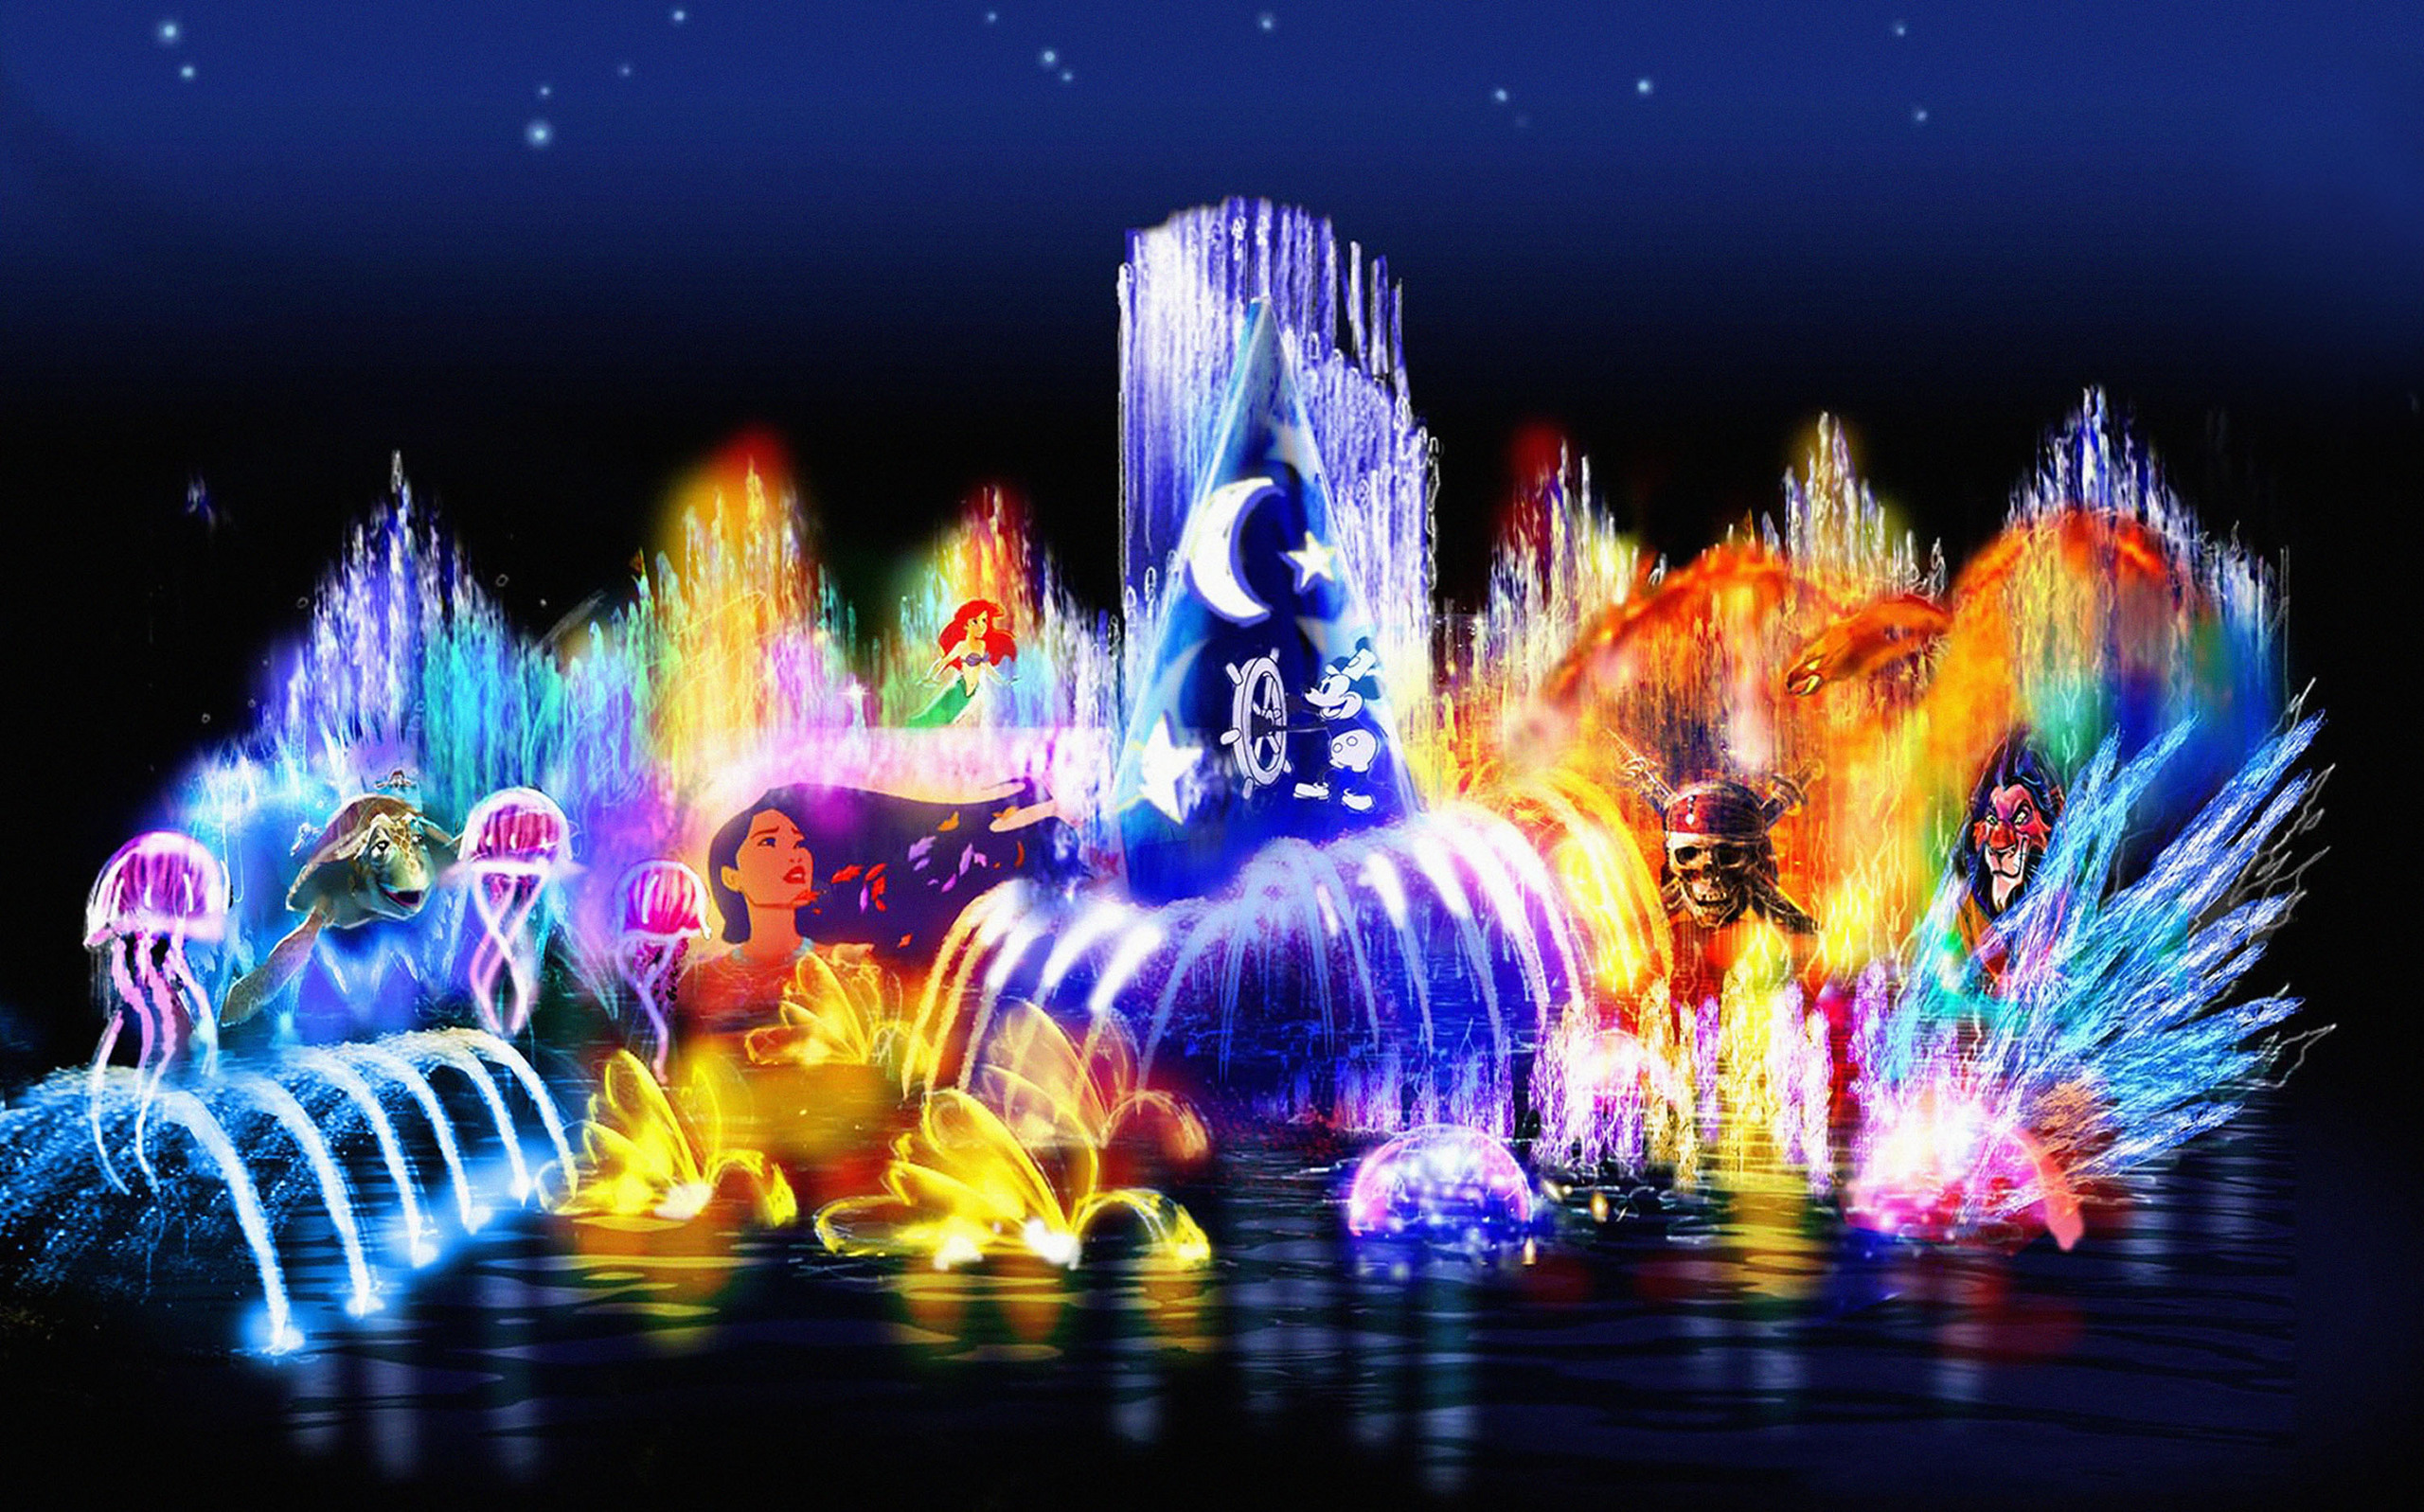 disney wallpaper Disney Characters Wallpaper 2560x1597